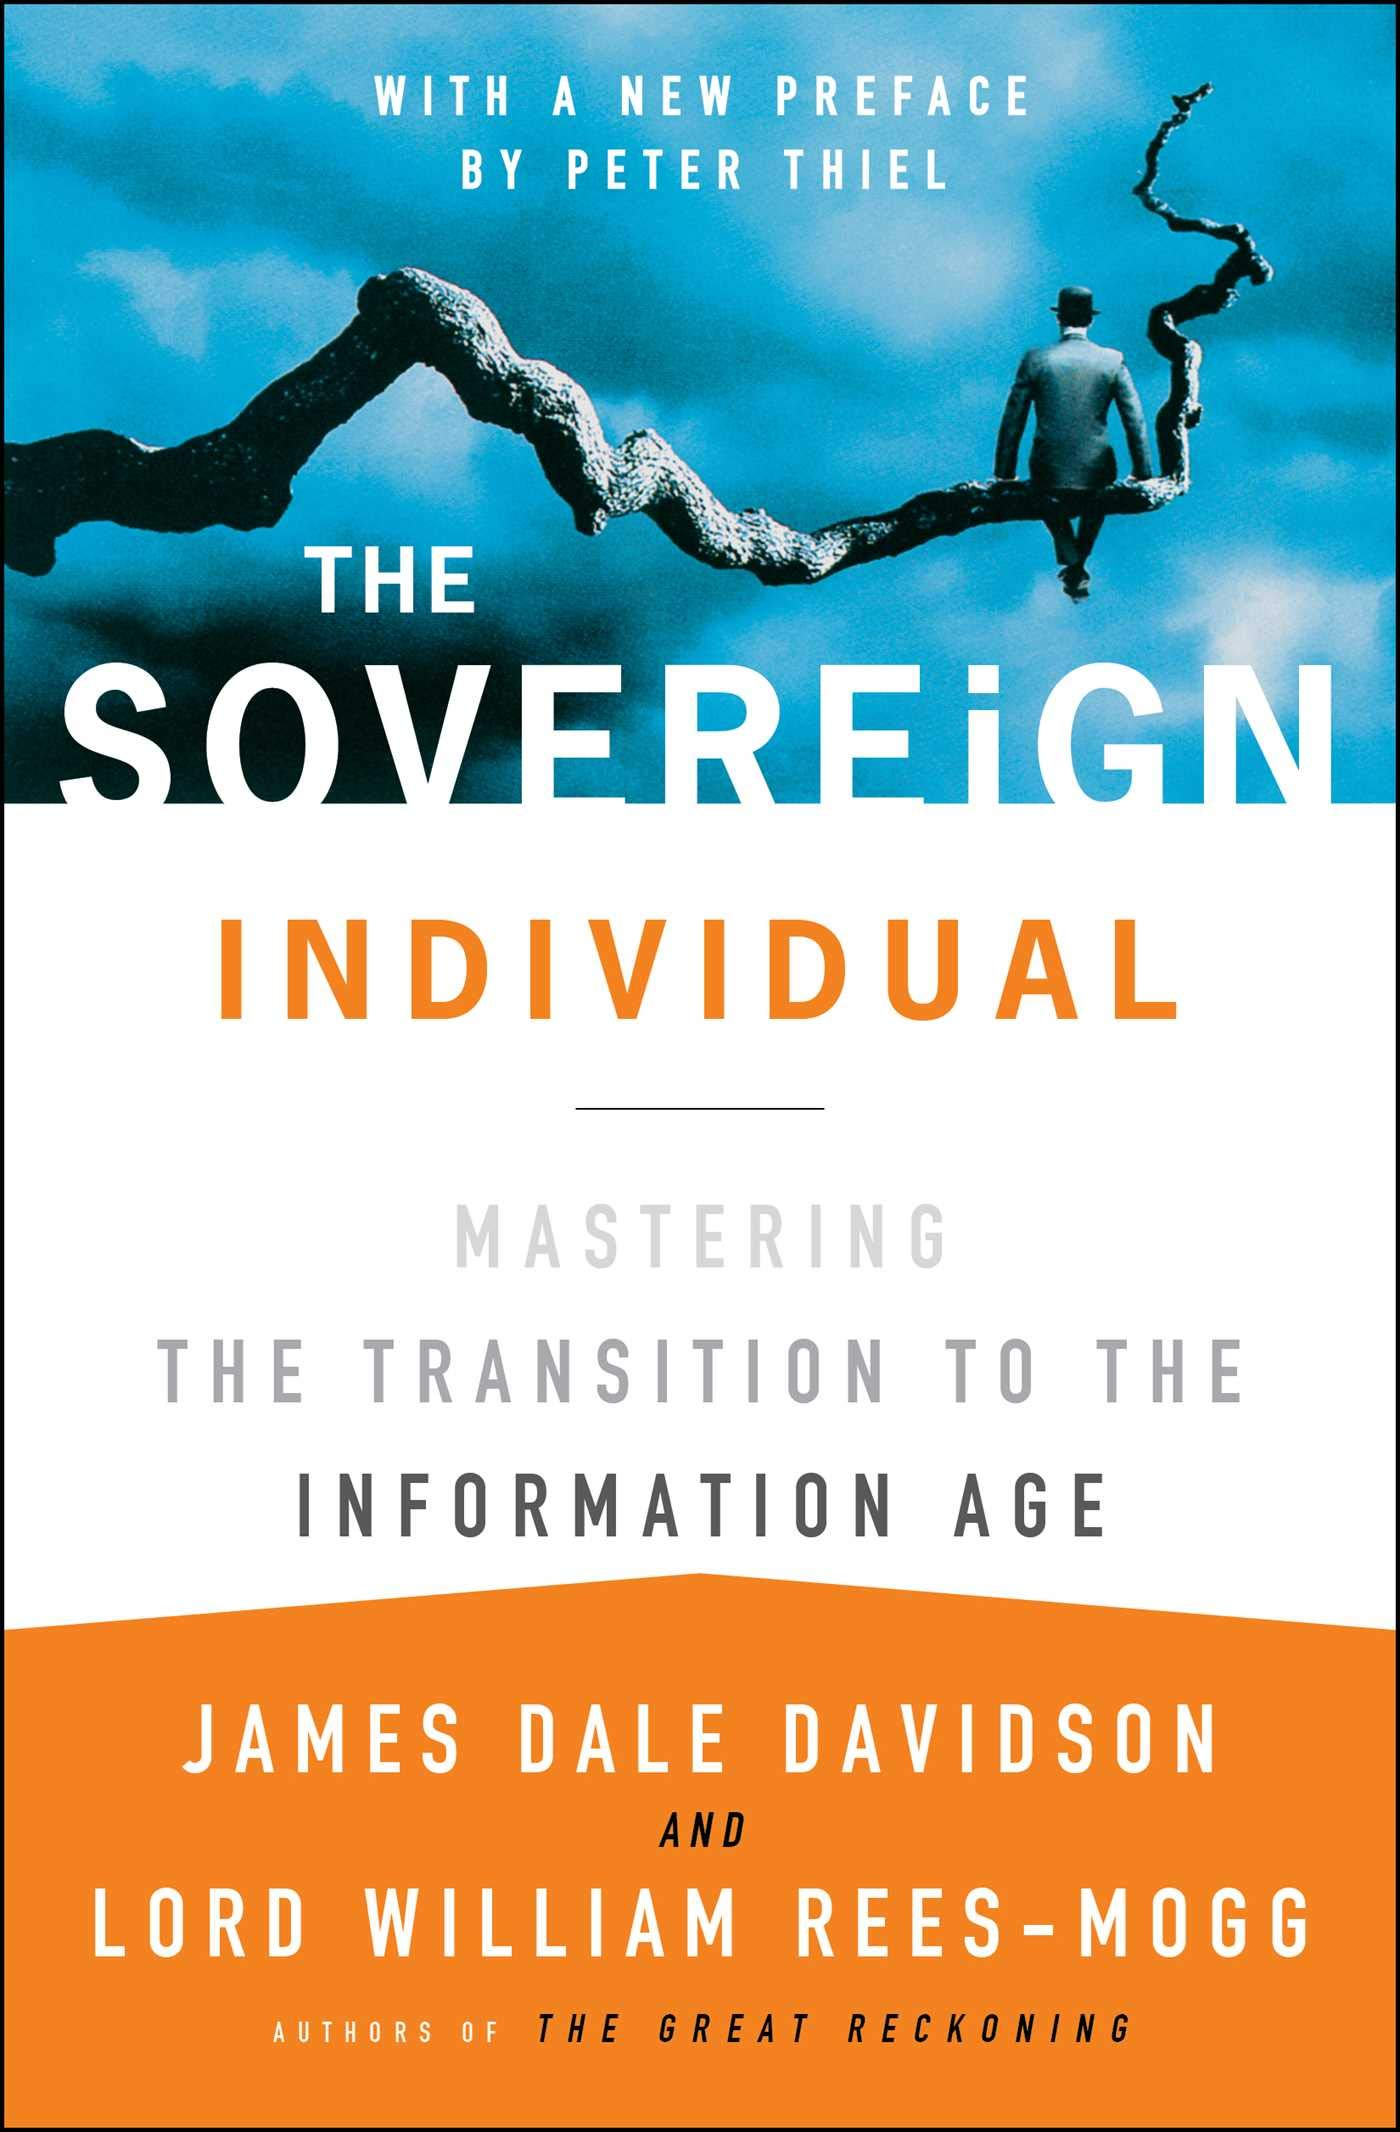 The Sovereign Individual Mastering The Transition To The Information Age James Dale Davidson William Rees Mogg 8601300369709 Books